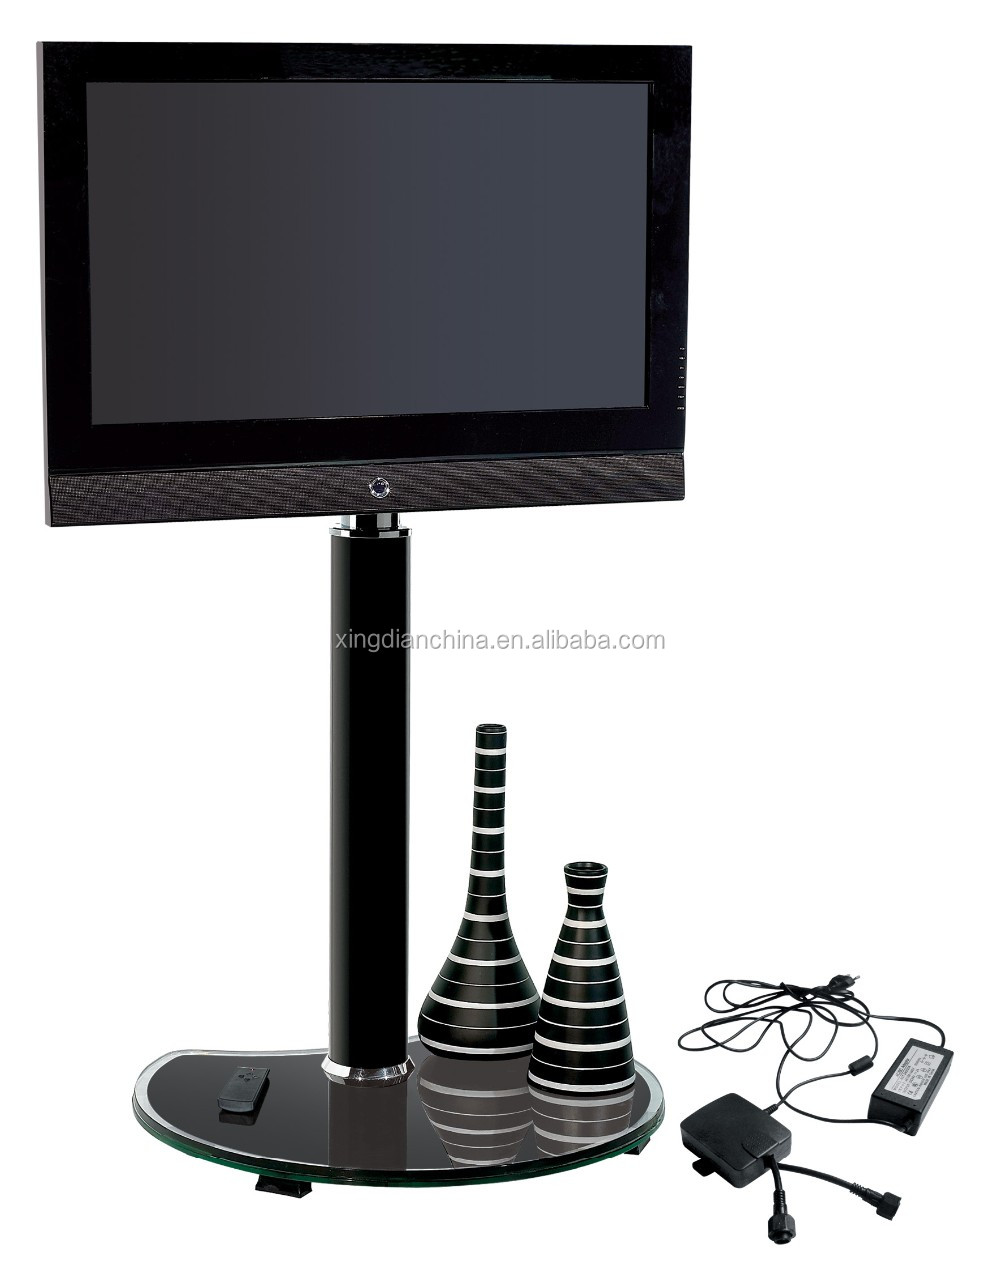 Motorized Lcd Tv Lift Buy Tv Lift Motorized Tv Lift